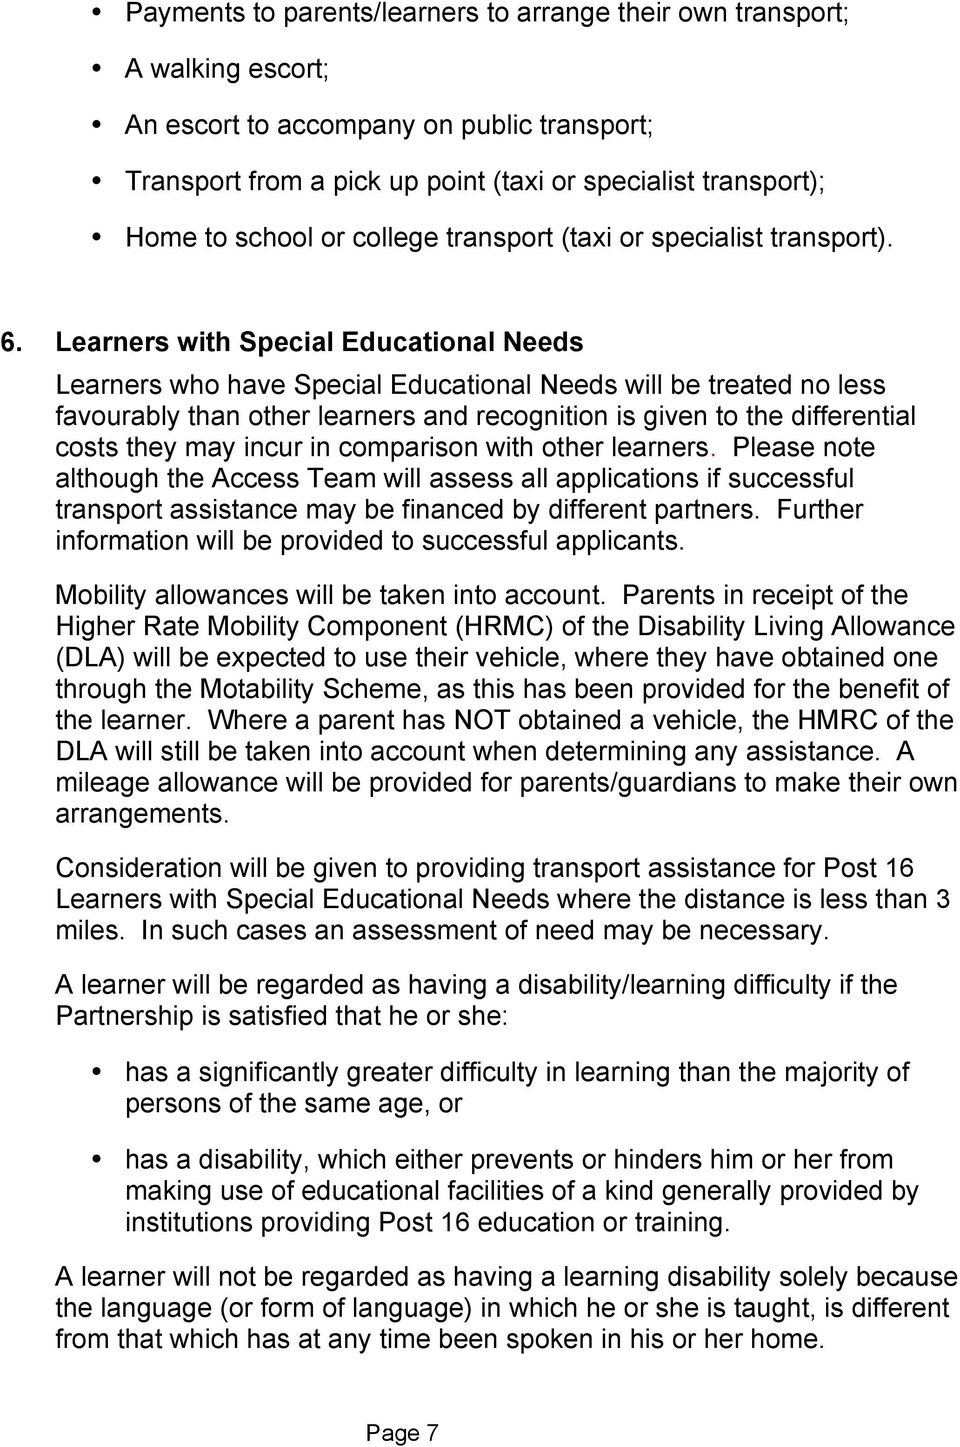 Learners with Special Educational Needs Learners who have Special Educational Needs will be treated no less favourably than other learners and recognition is given to the differential costs they may